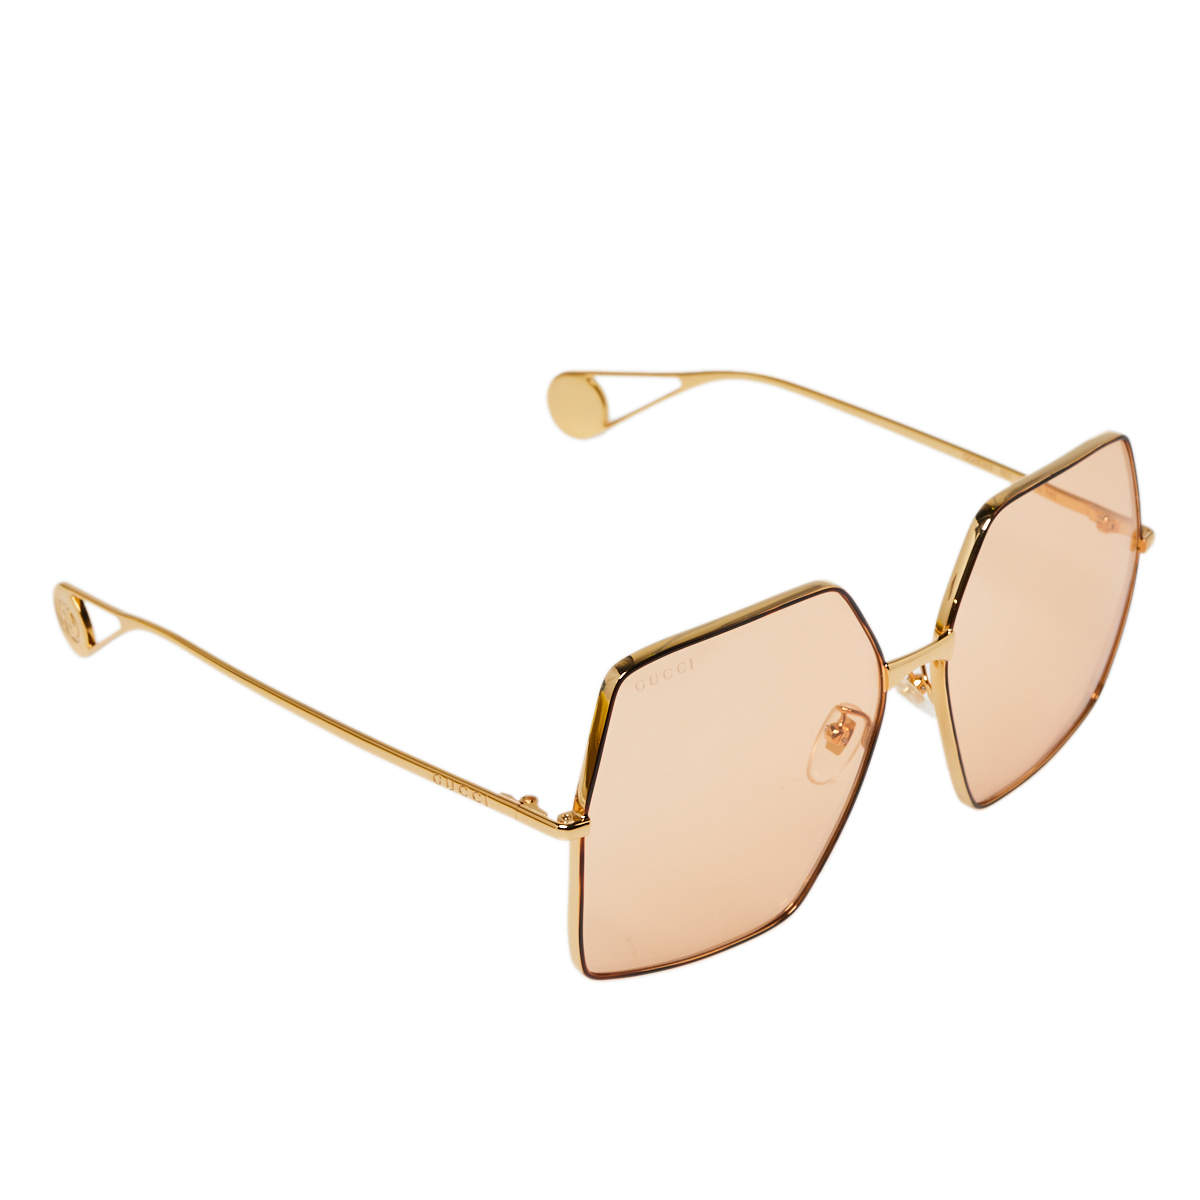 Gucci Gold Tone/Pale Orange GG0536S Oversized Sunglasses